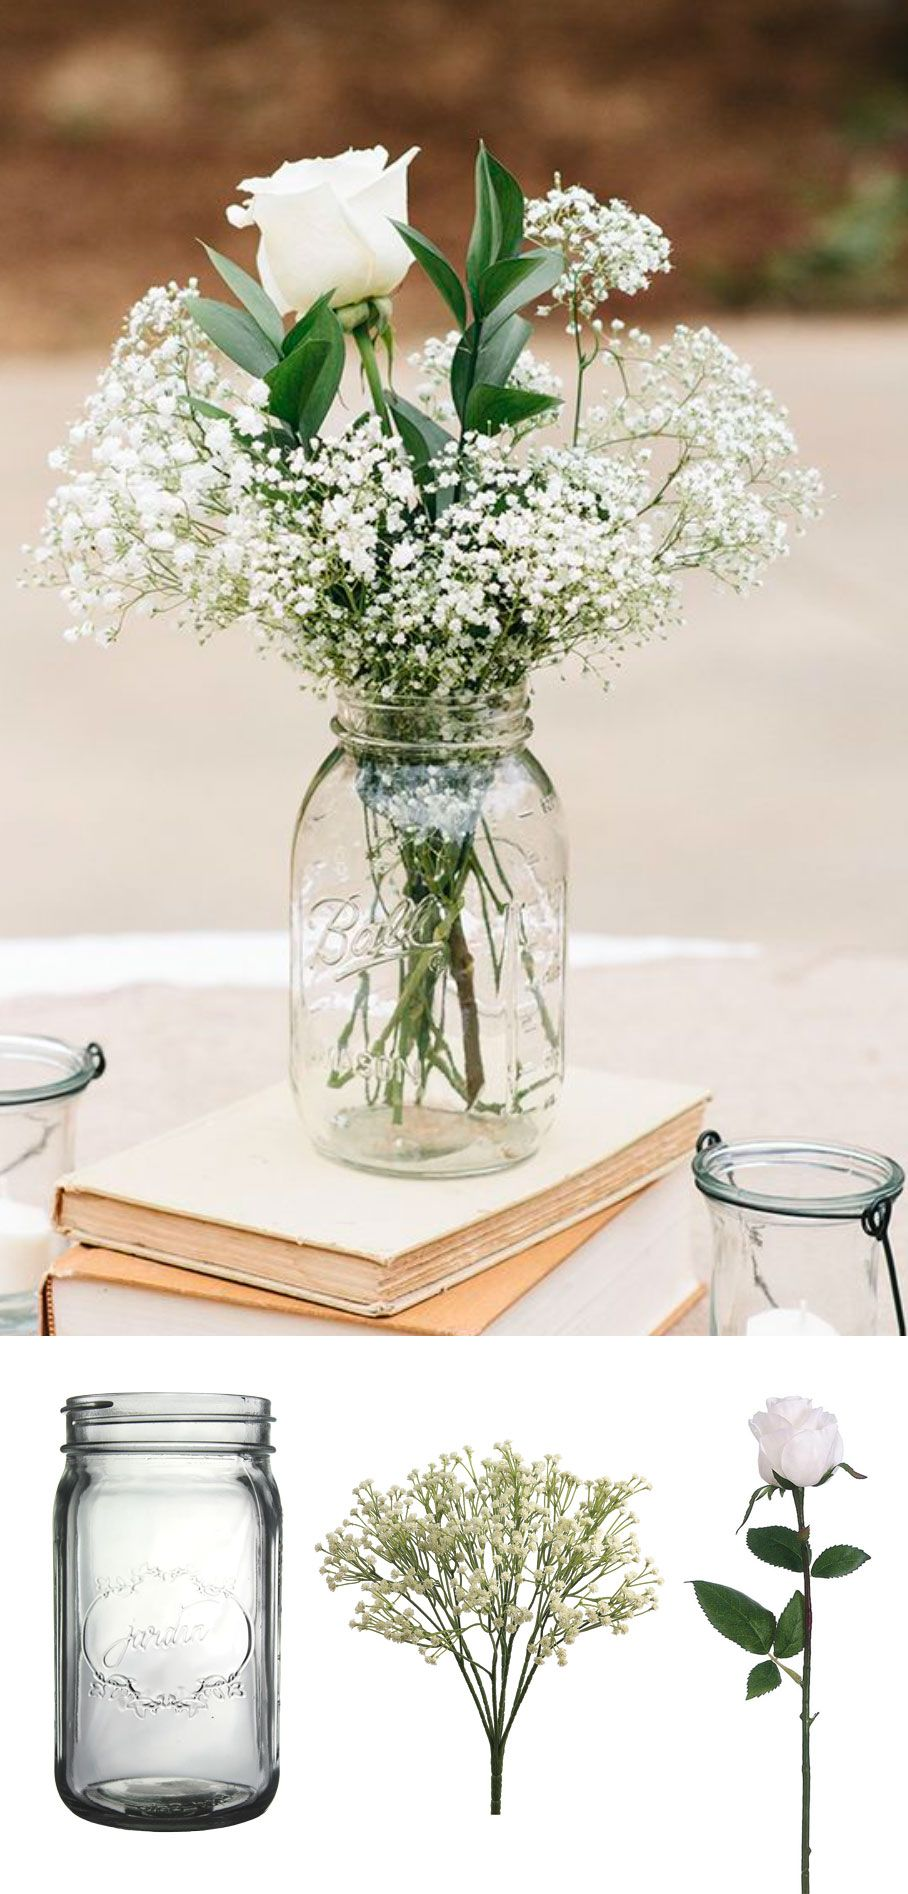 Turn your favorite fresh flower inspiration into a long